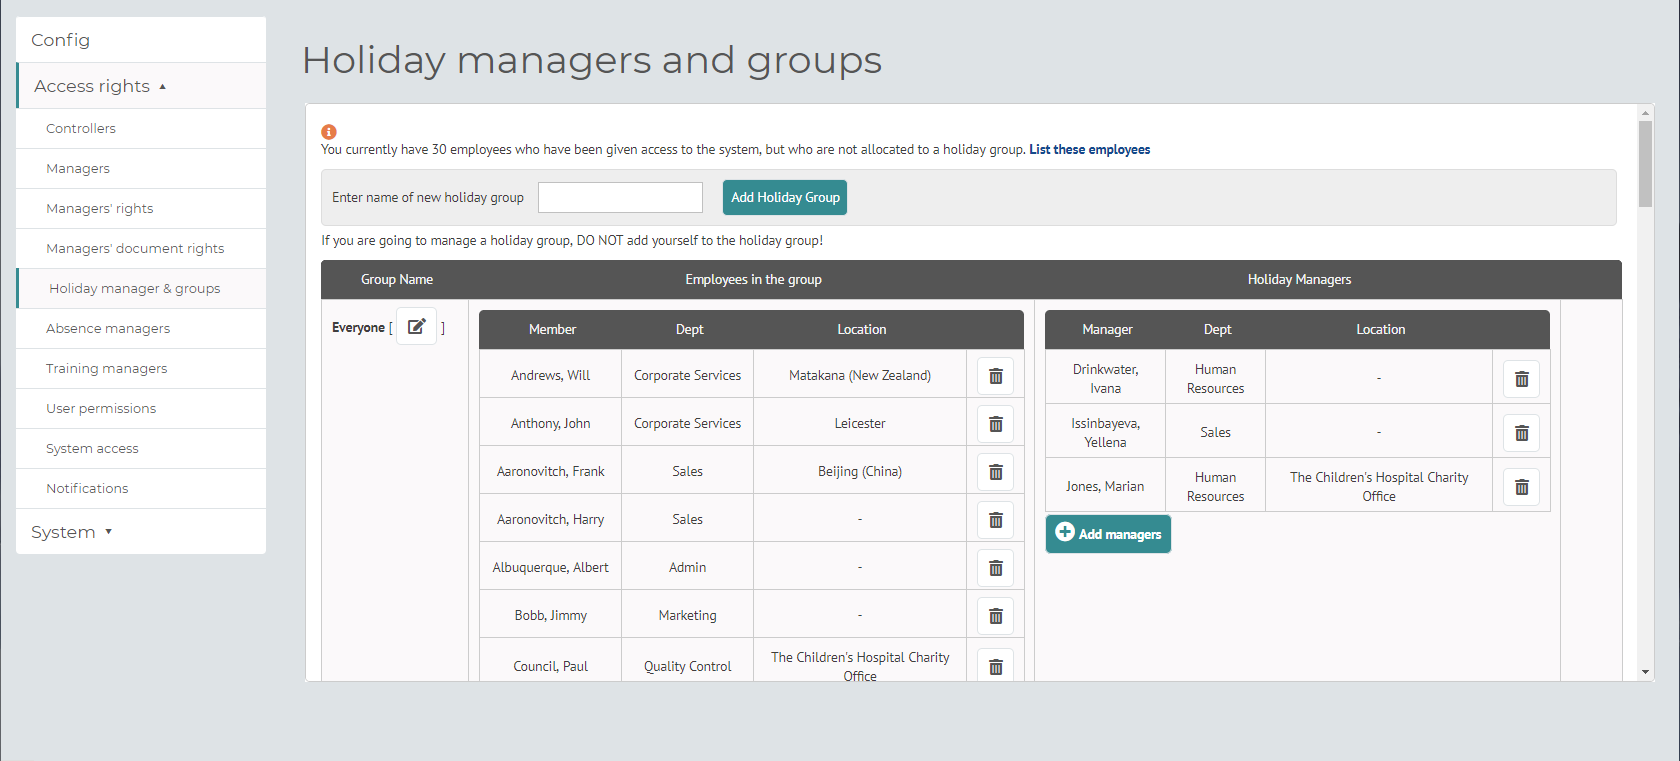 myhrtoolkit config holiday managers and groups